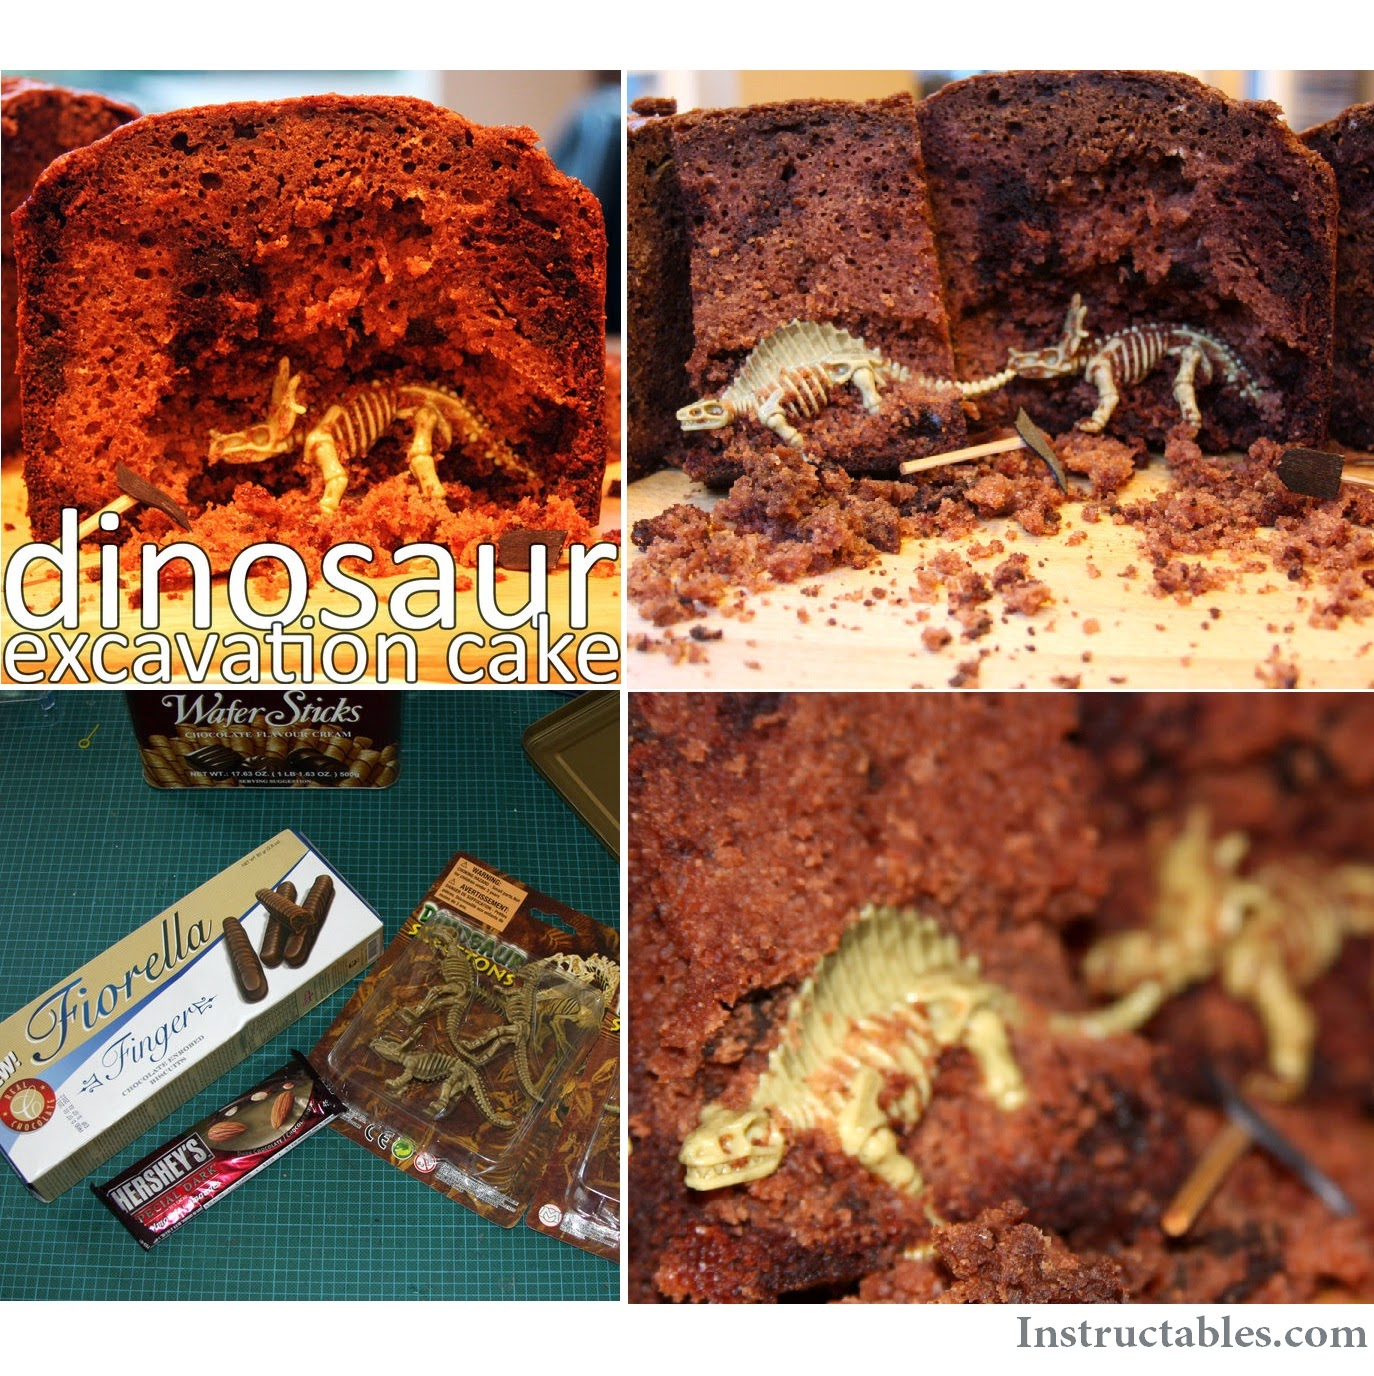 http://www.instructables.com/id/dinosaur-excavation-cake/?ALLSTEPS